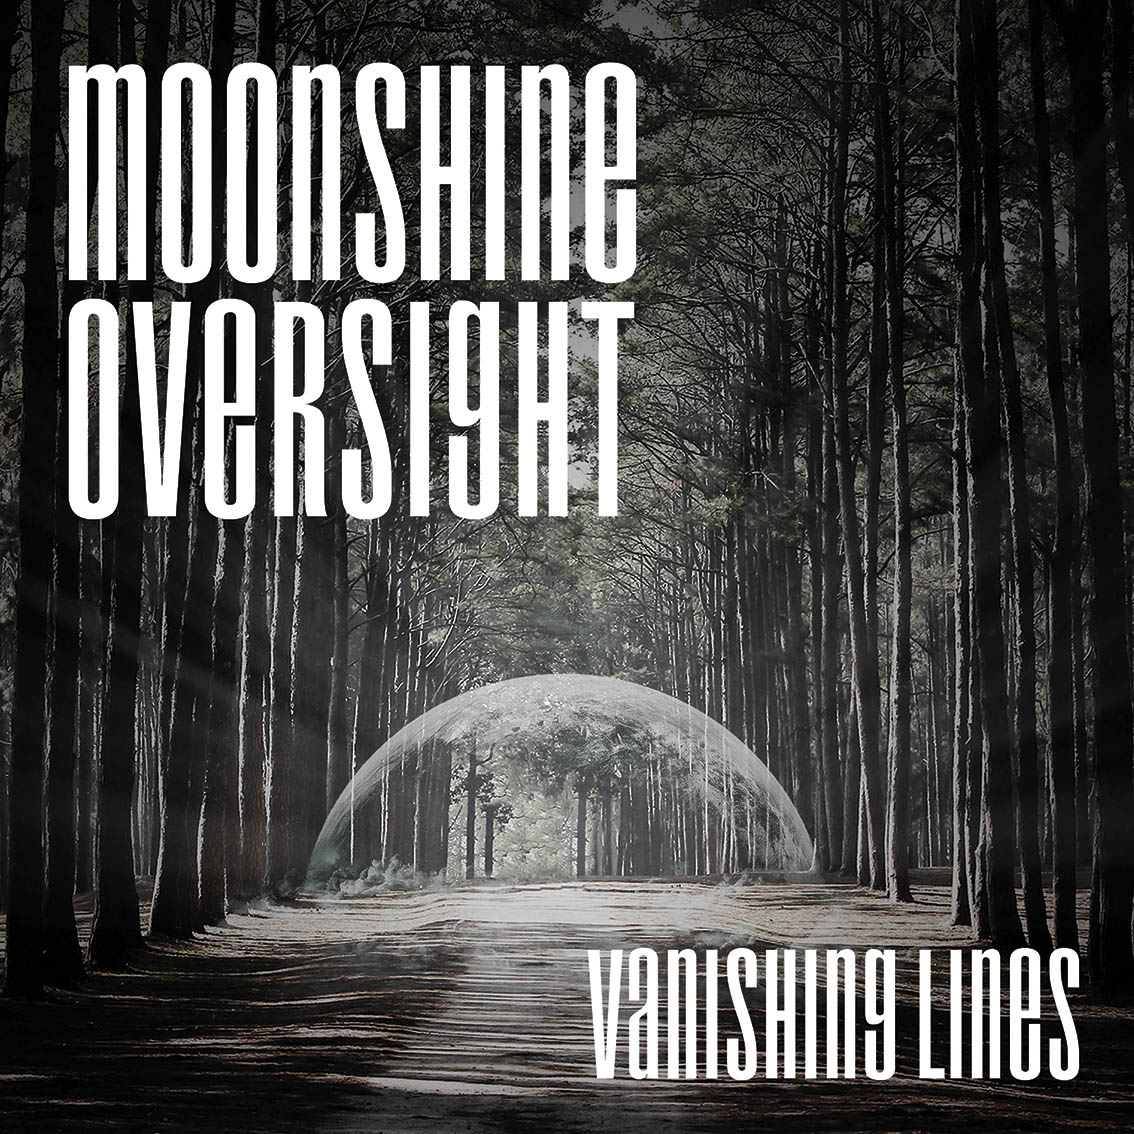 Mooshine Oversight Vanishing Lines Album